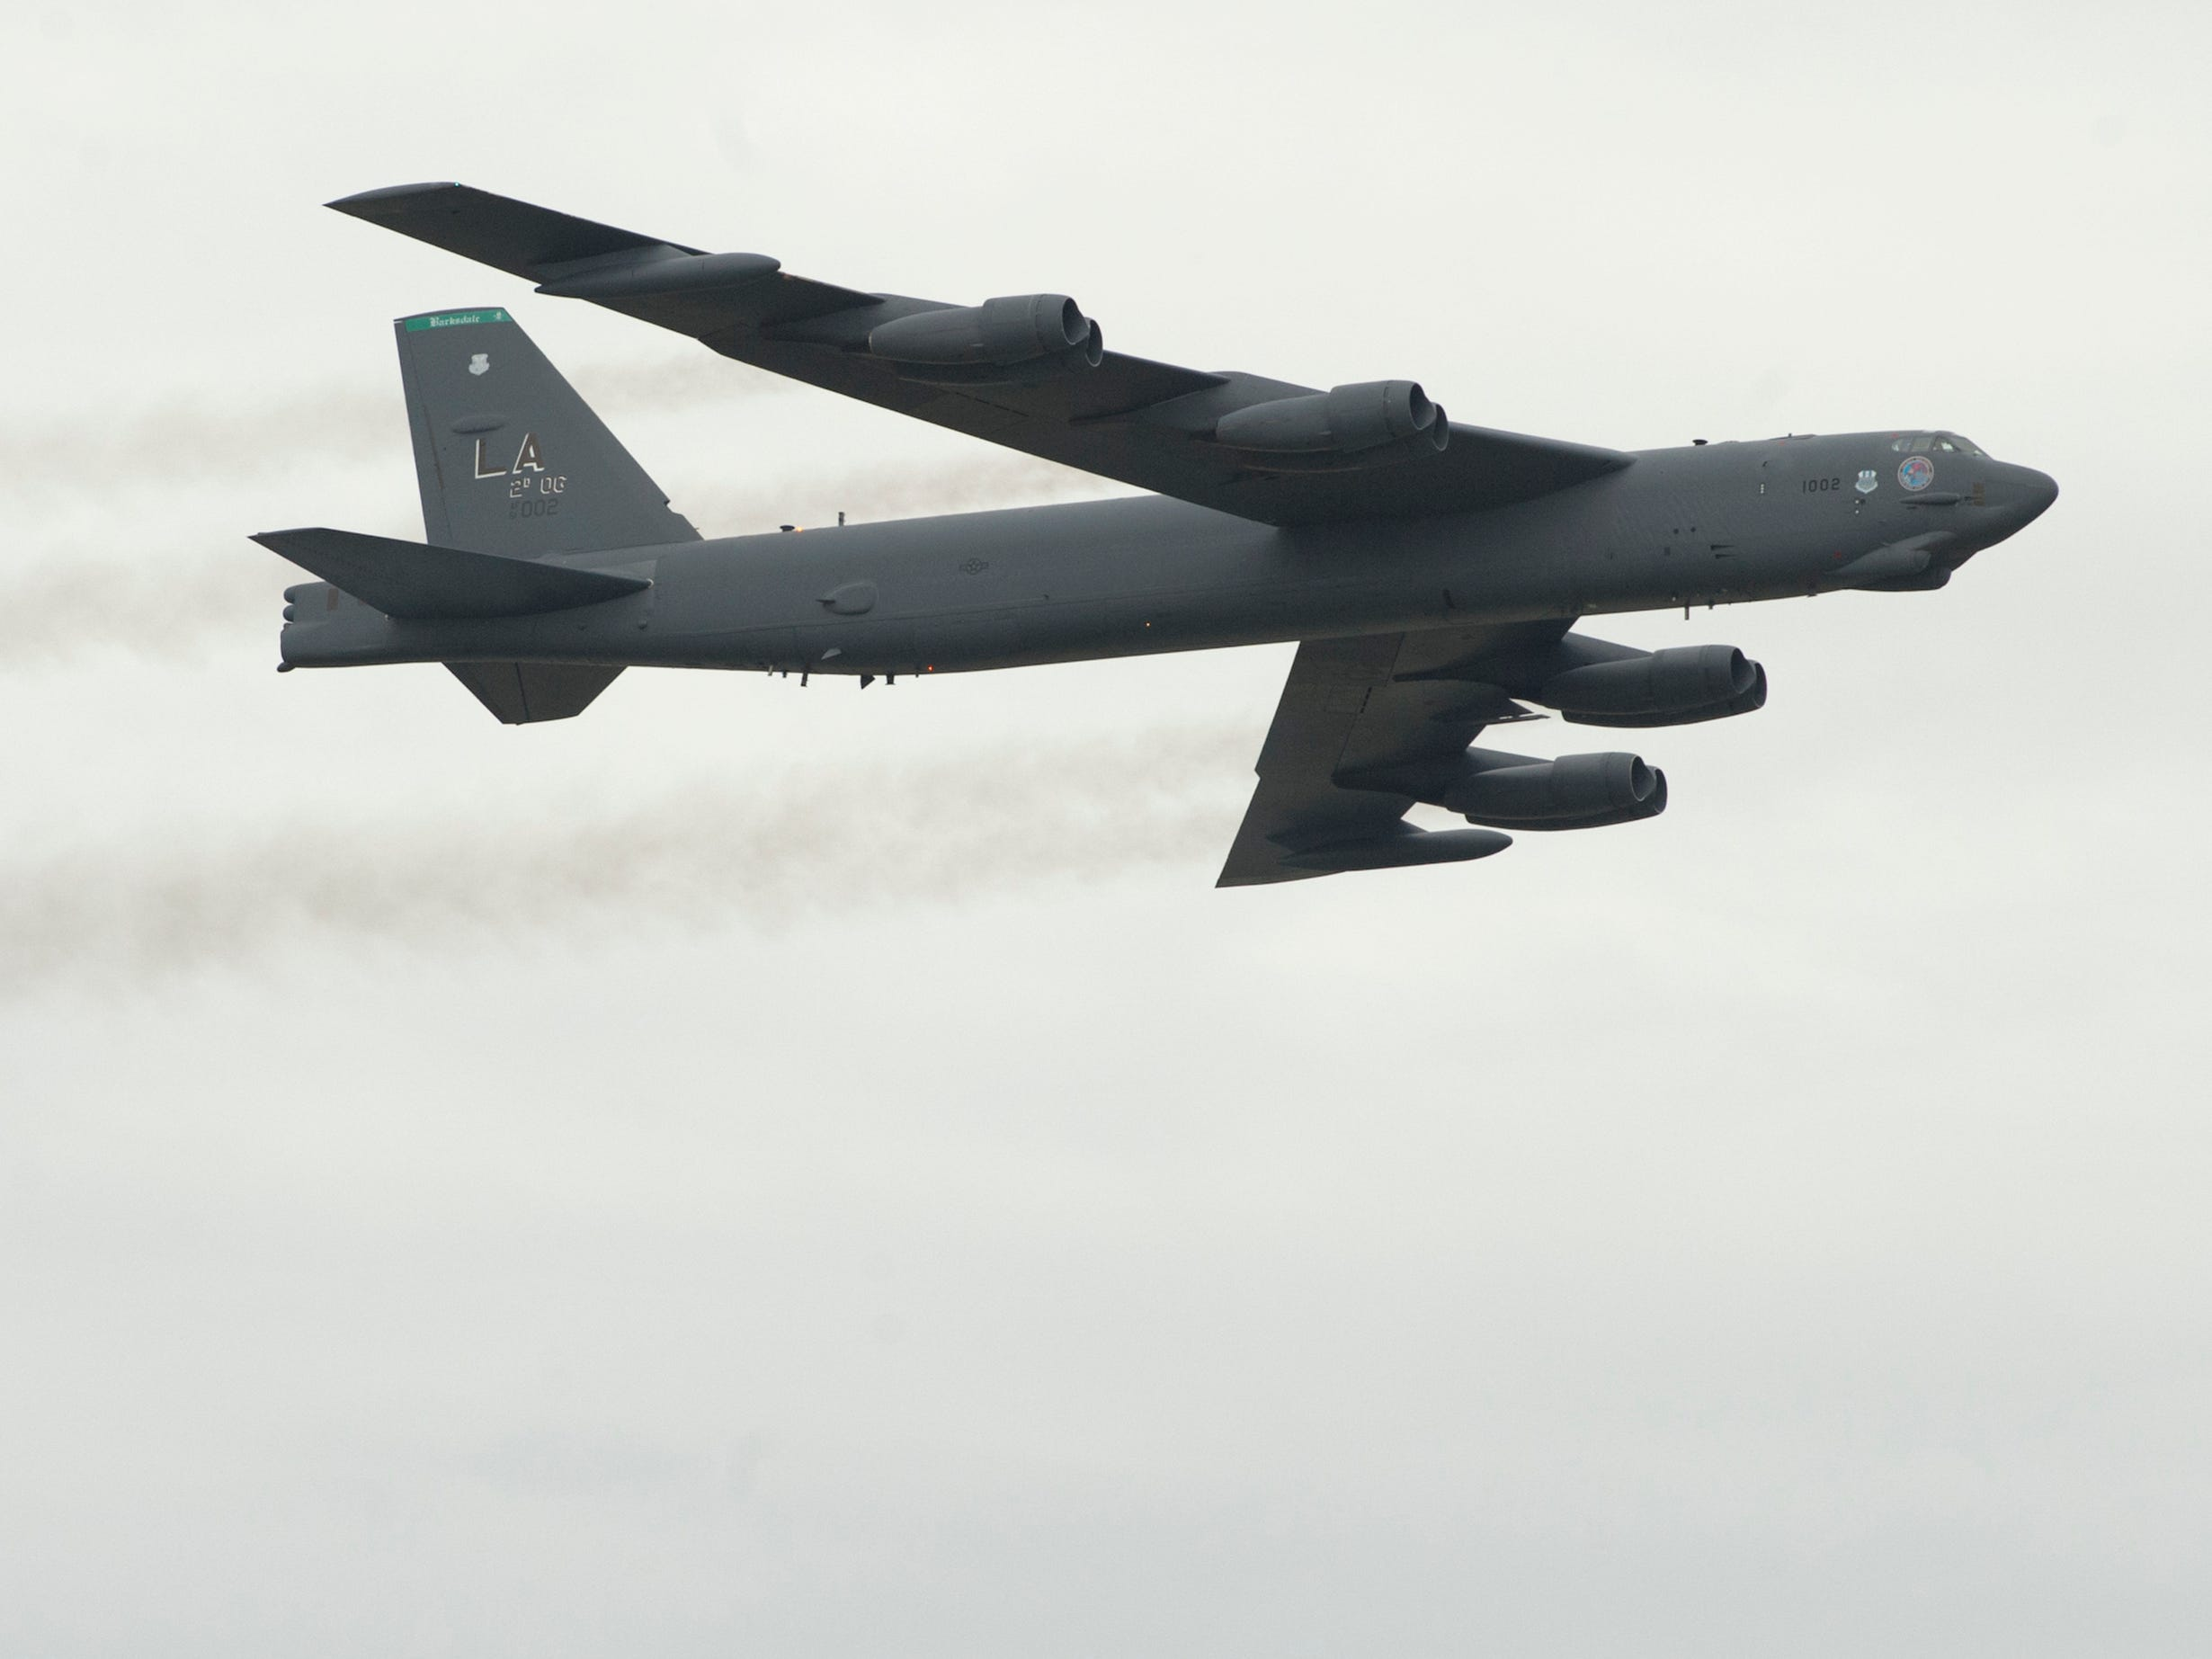 2nd Bomb Wing of the U.S. Air Force flies a B-52 bomber at the 2019 Thunder Over Louisville Air Show.13 April 2019